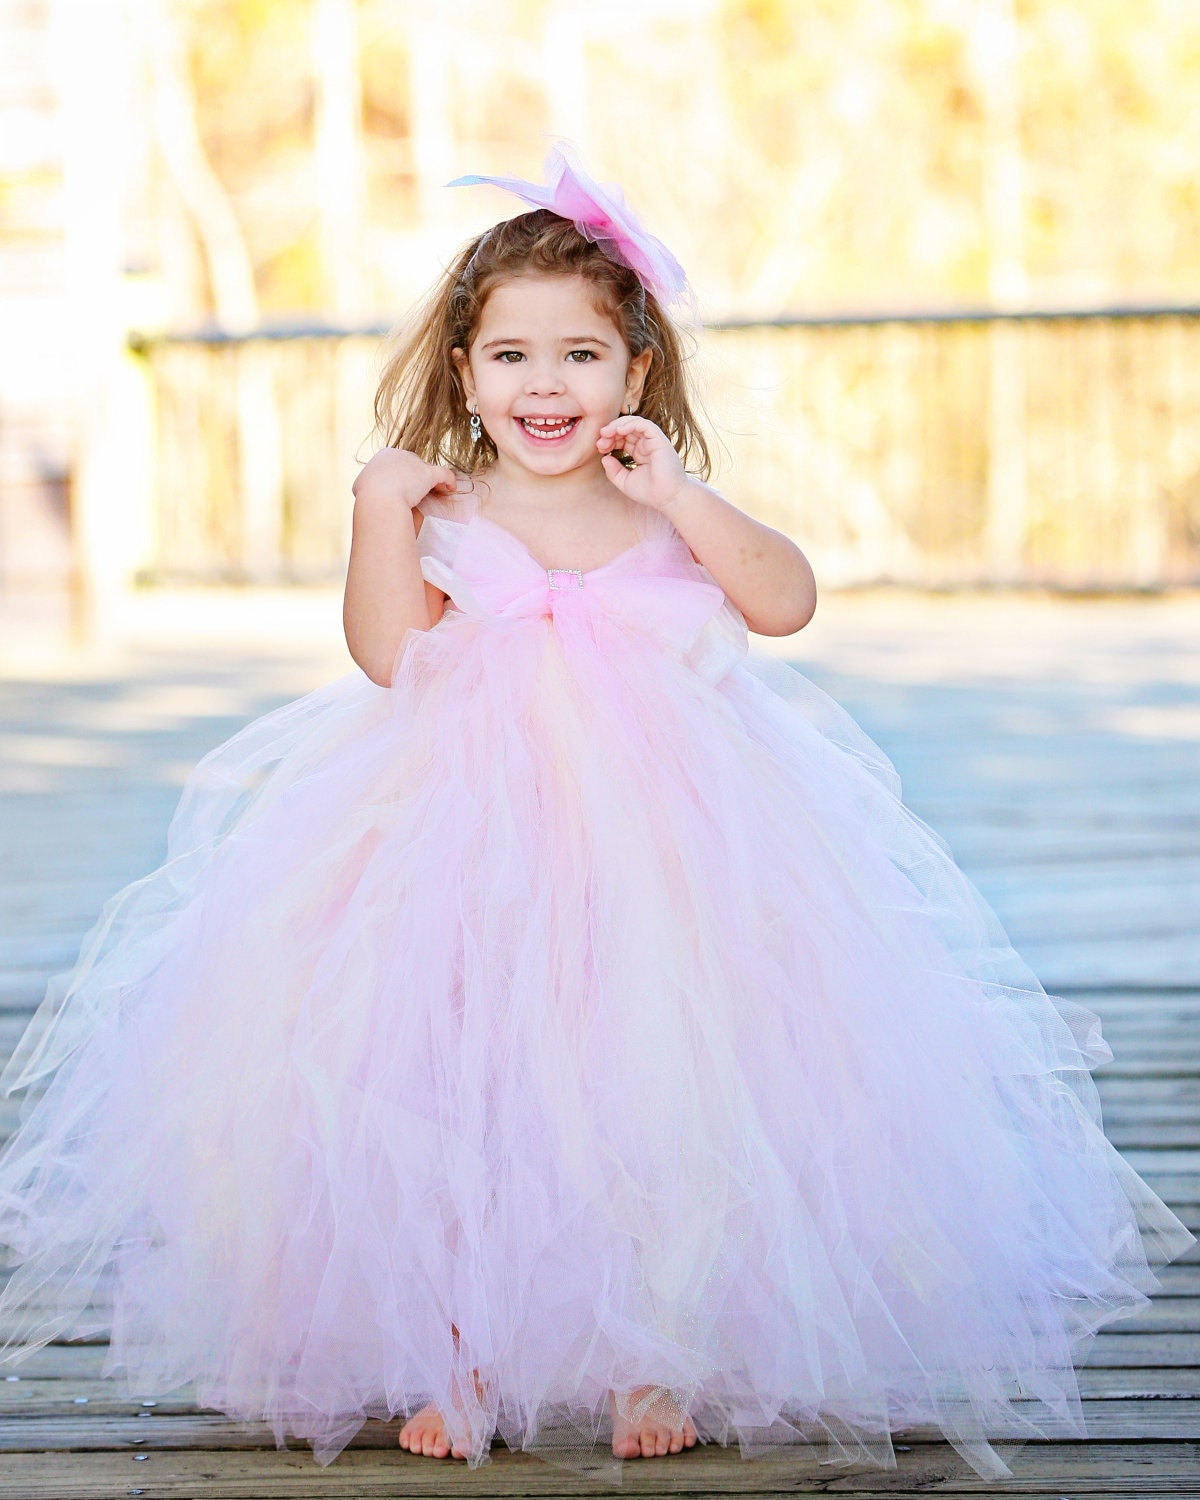 Blush Flower Girl Tutu DressOrganza BowAvailable in Many